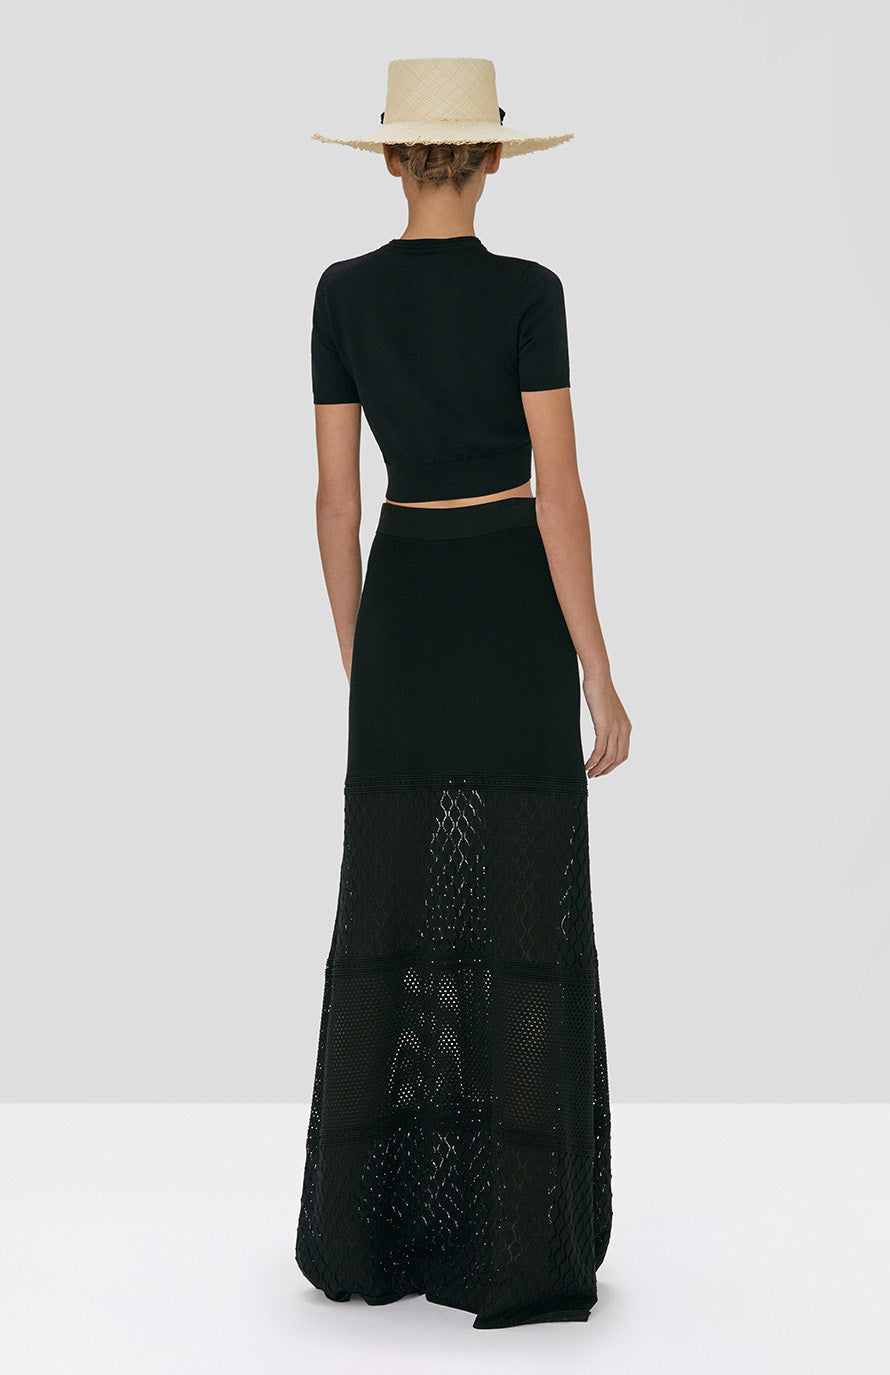 Alexis Finzi Crop Top and Ecco Skirt in Black from the Spring Summer 2020 Collection  - Rear View